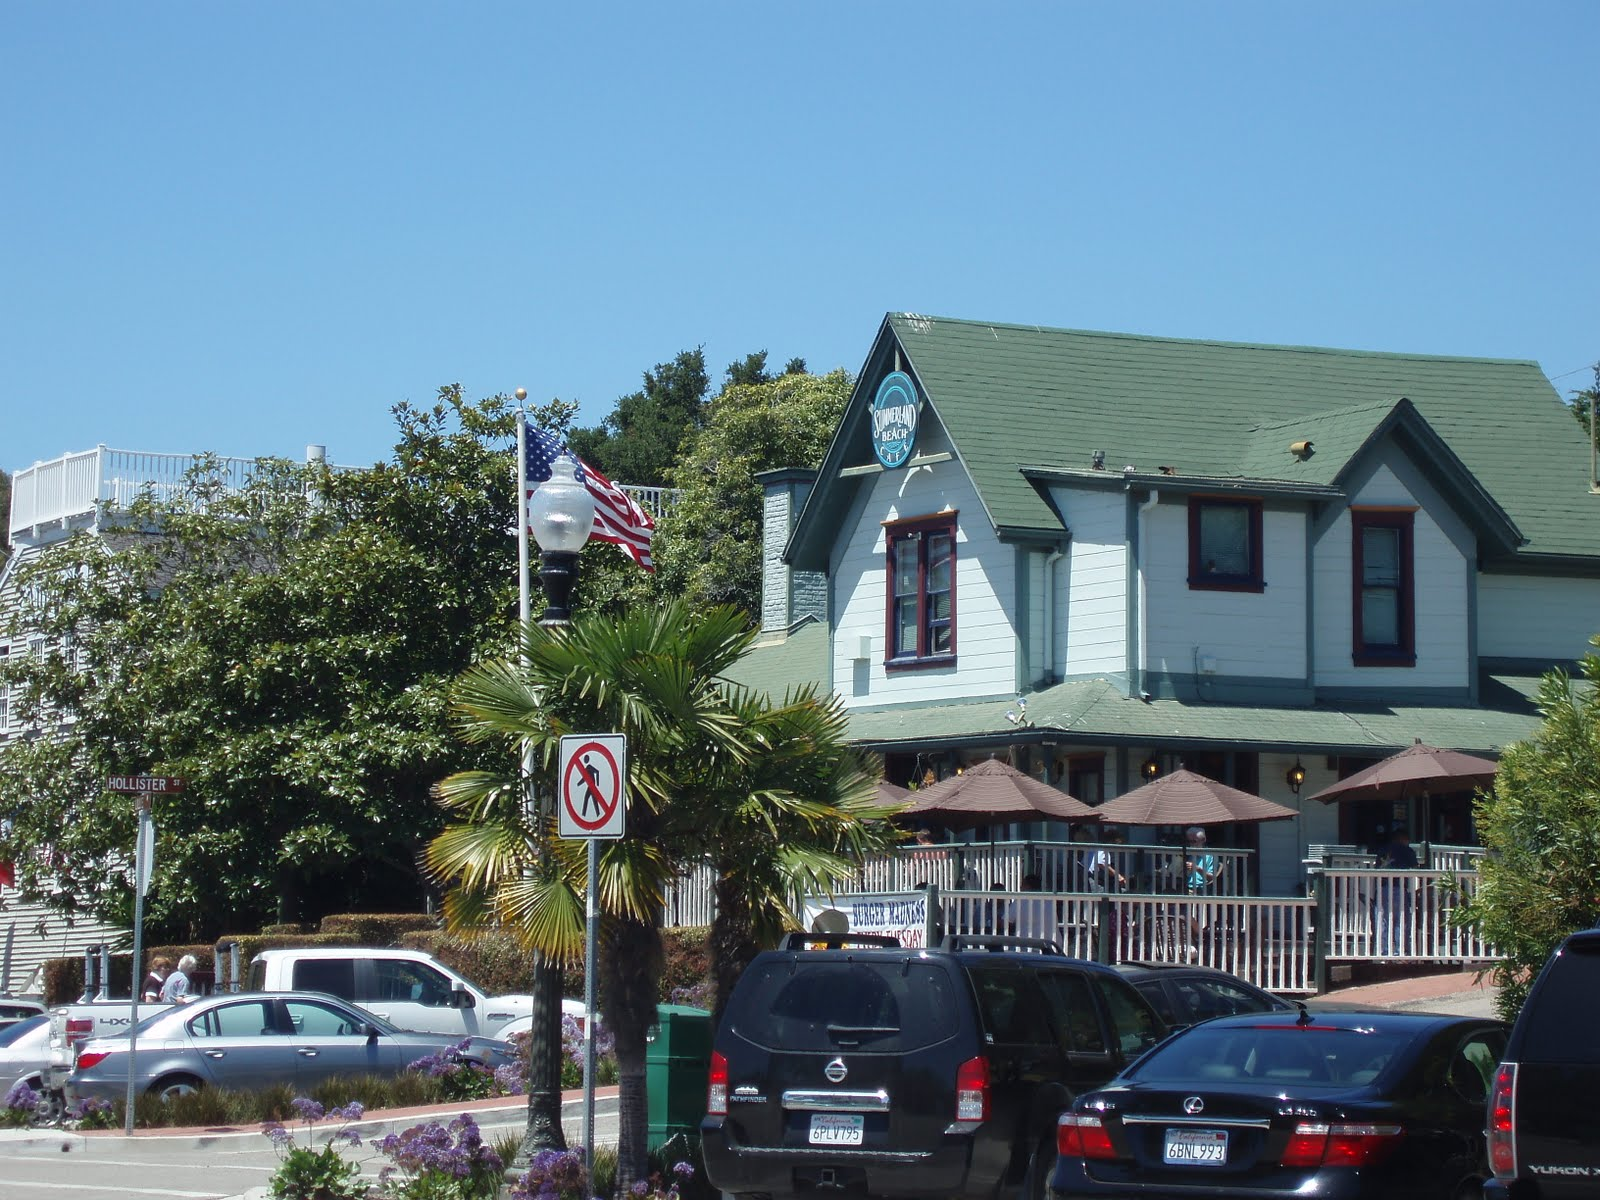 Summerland Beach Cafe serving breakfast and lunch